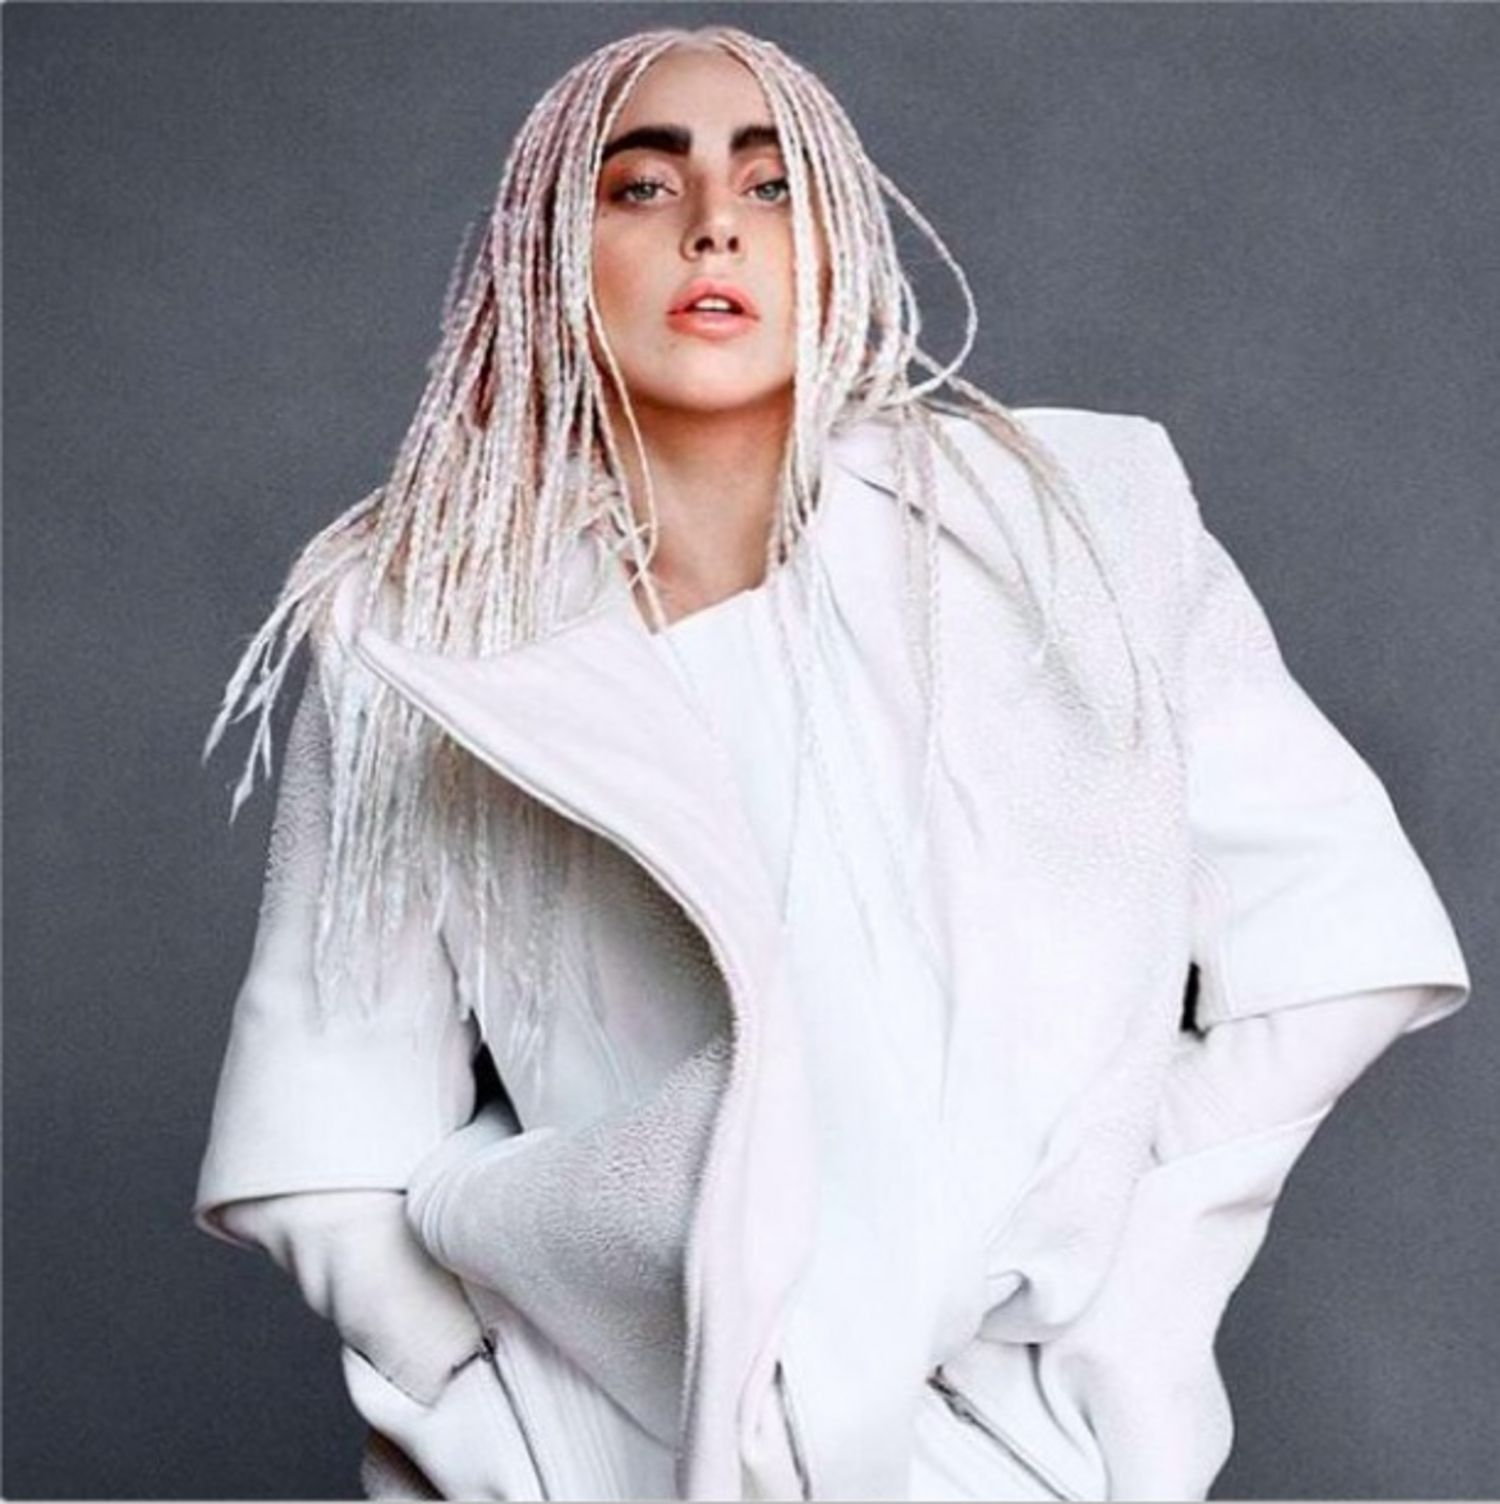 lady-gaga-sister-parsons-thesis-collection-coat-main.jpg